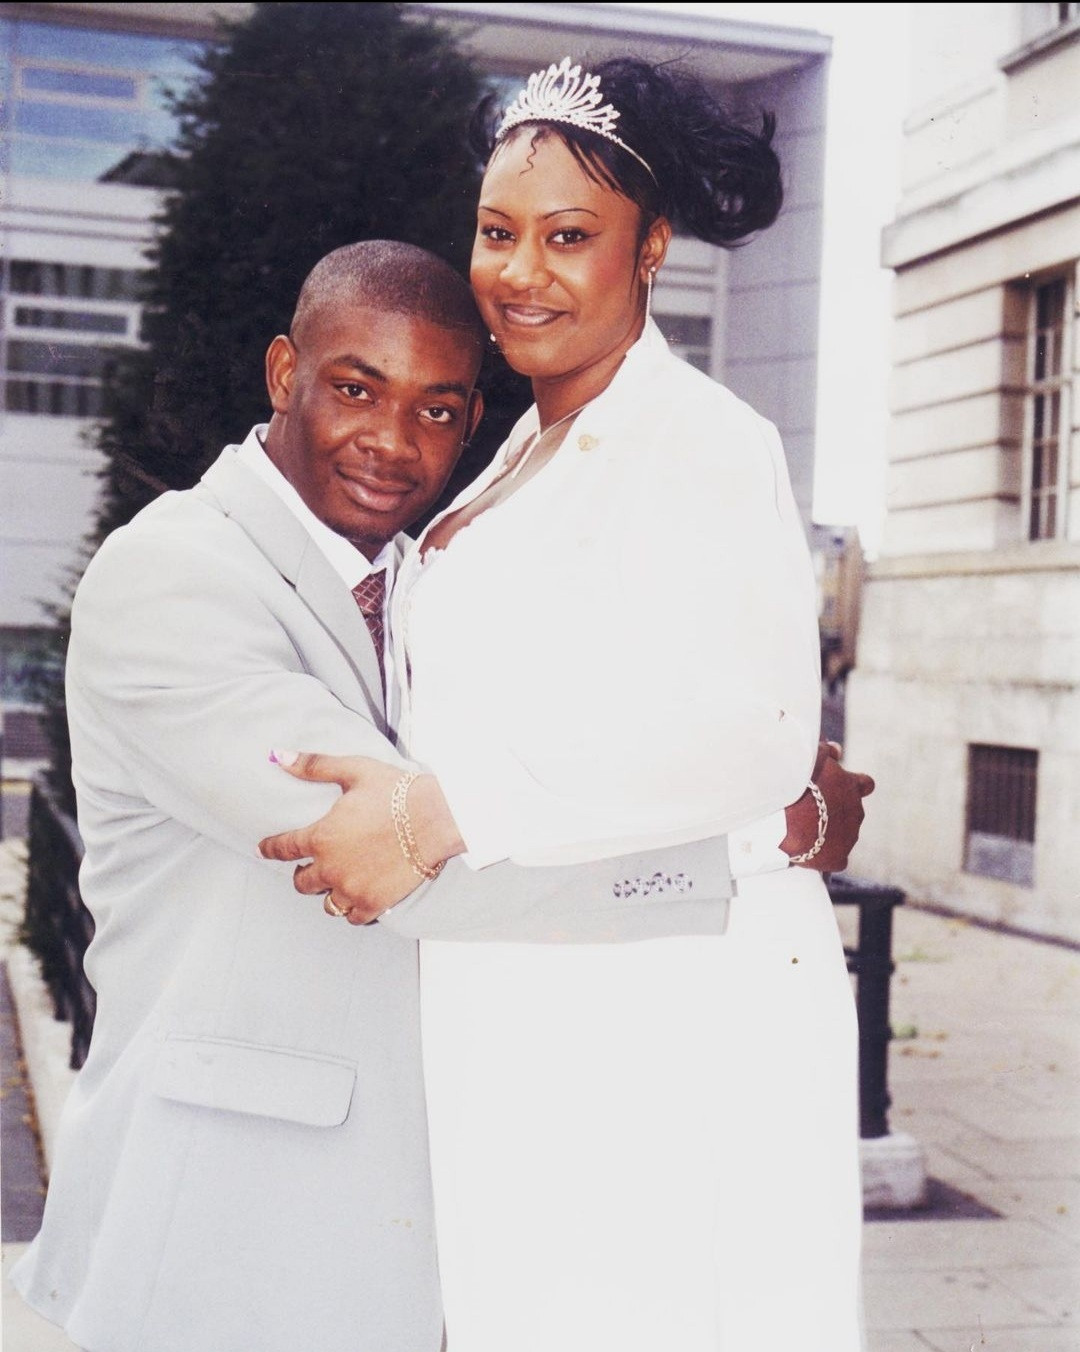 Don Jazzy reveals he was married at age 20 to model, Michelle Jackson, and explains why it ended in divorce